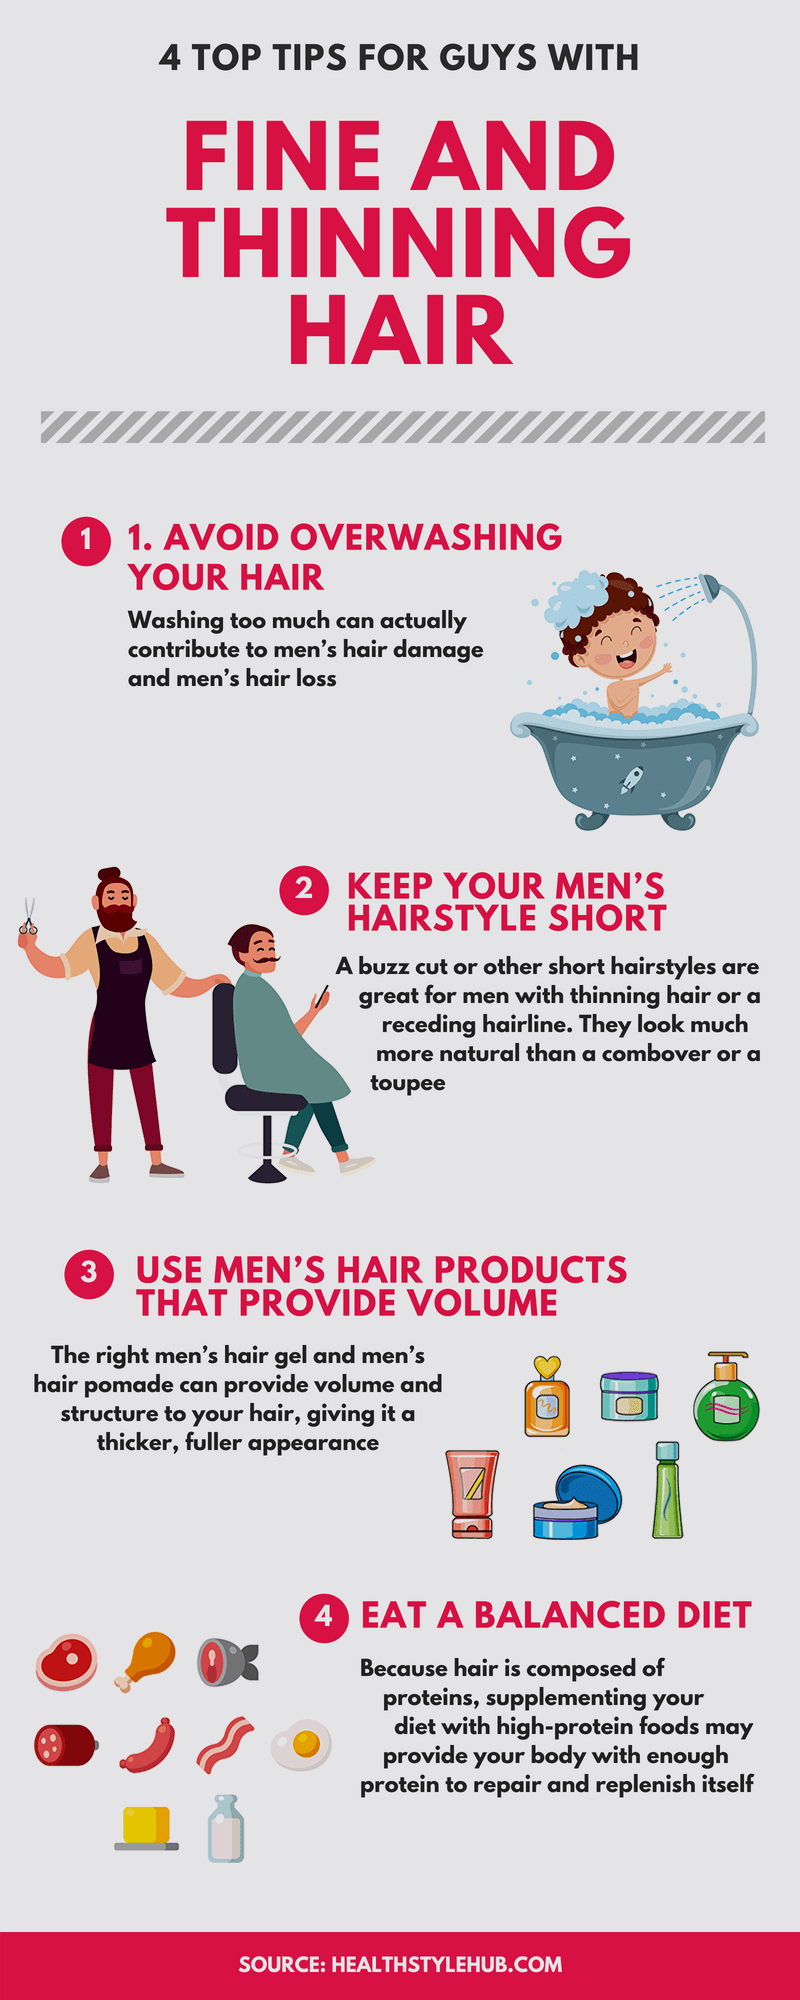 4-top-tips-for-guys-with-fine-and-thinning-hair